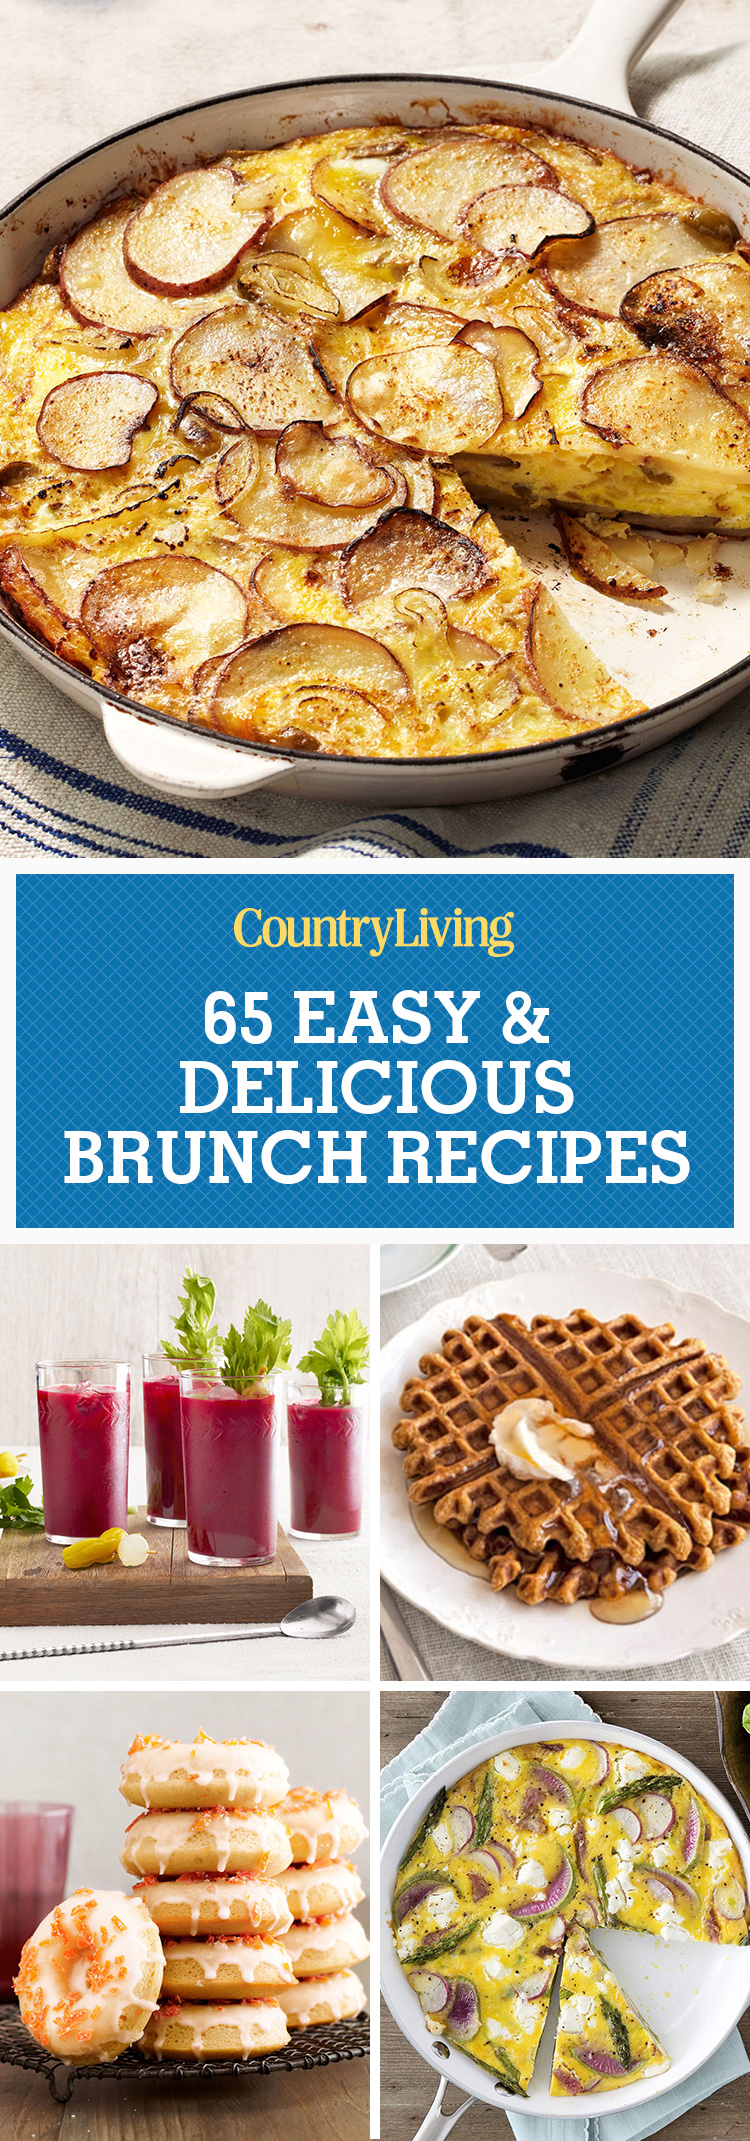 75 easy brunch recipes best brunch menu ideas country for Best brunch menu